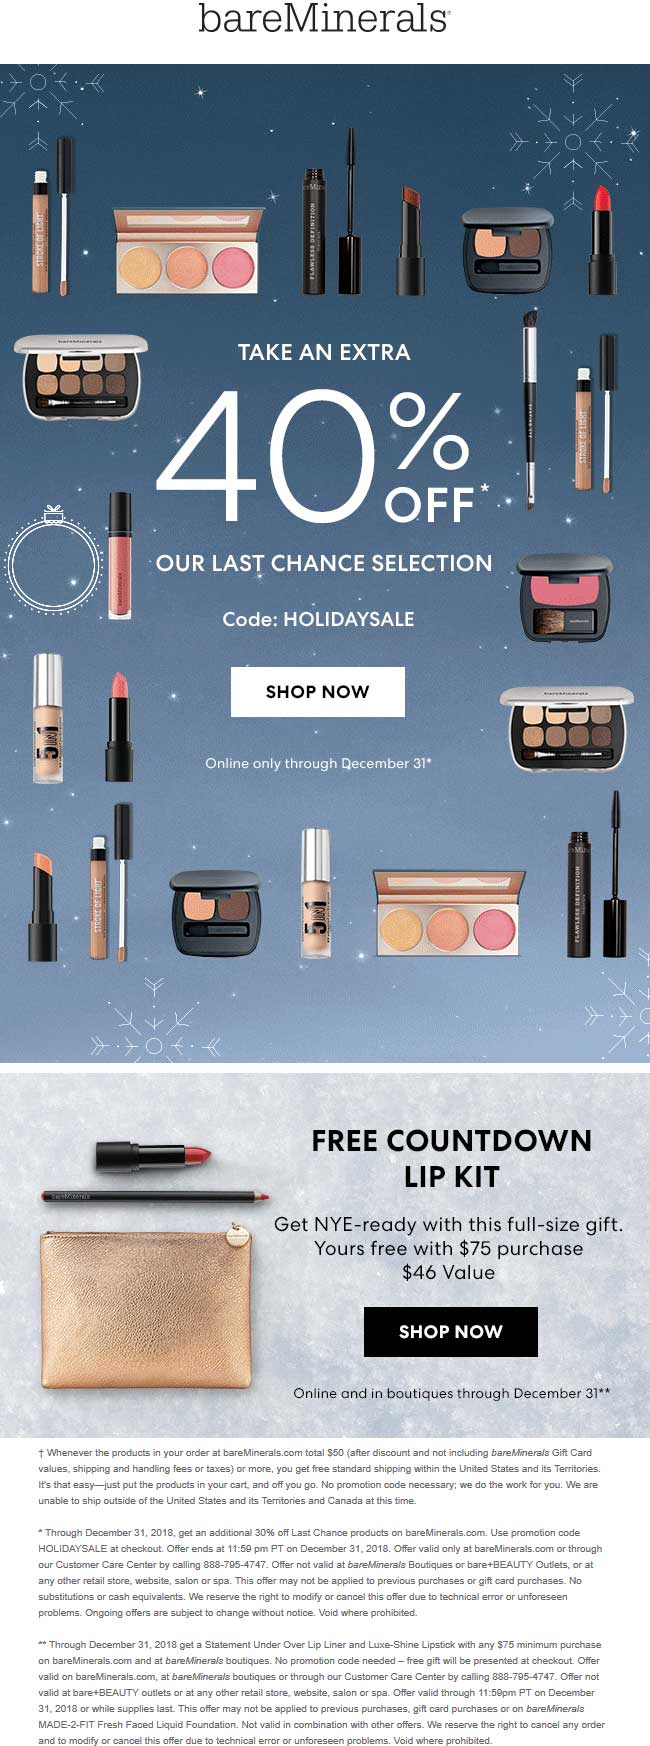 bareMinerals Coupon January 2020 40% off online at bareMinerals via promo code HOLIDAYSALE